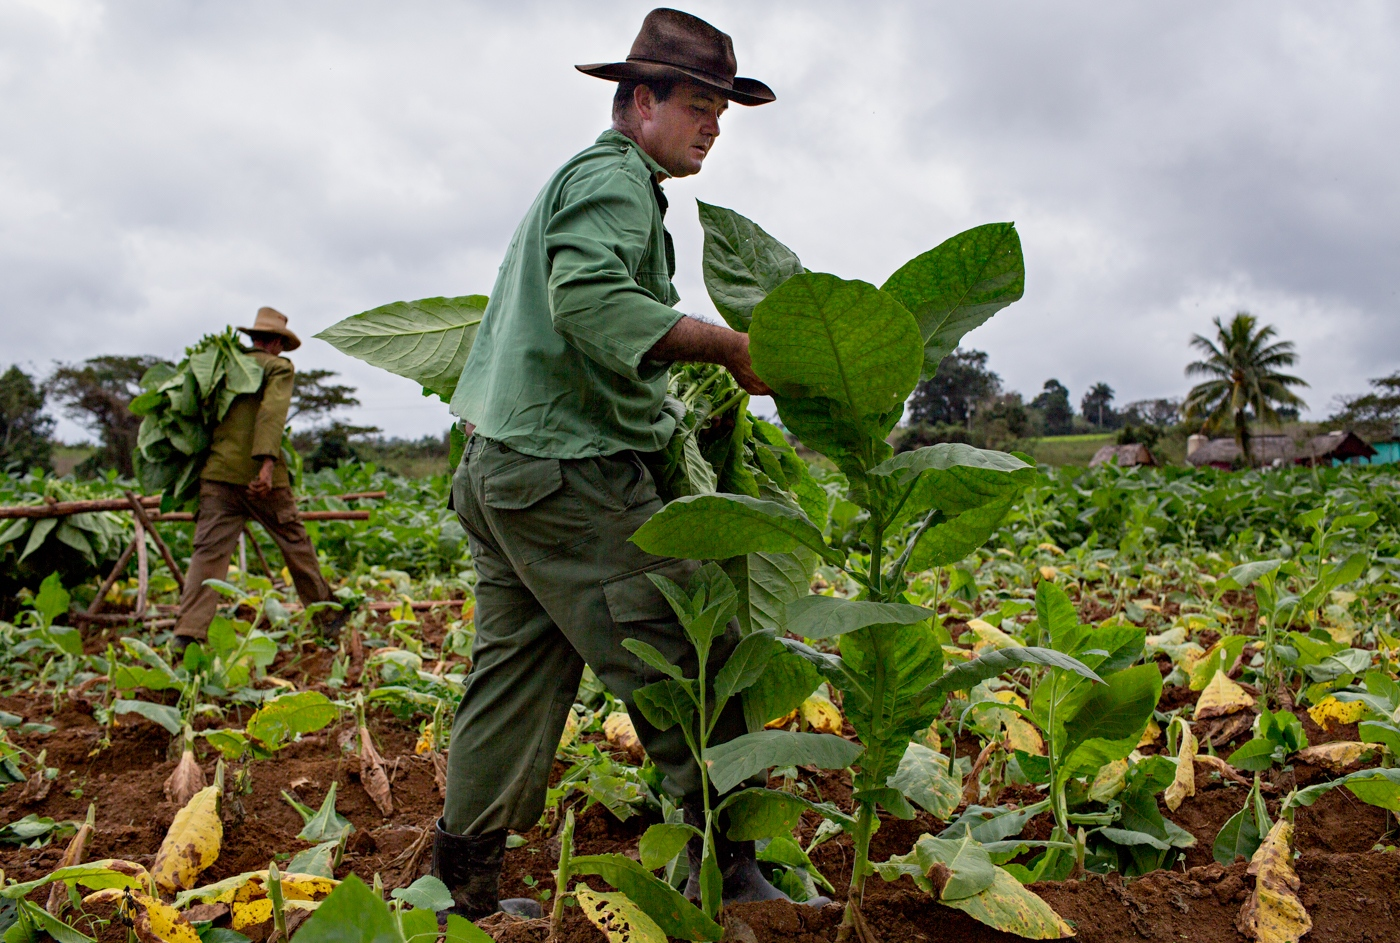 A tobacco farmer harvests tobacco leaves in Vinales-a farming village two hours drive from Havana. The leaves are hand harvested and then bundled and placed on wooden racks which then are taken into huts to dry.